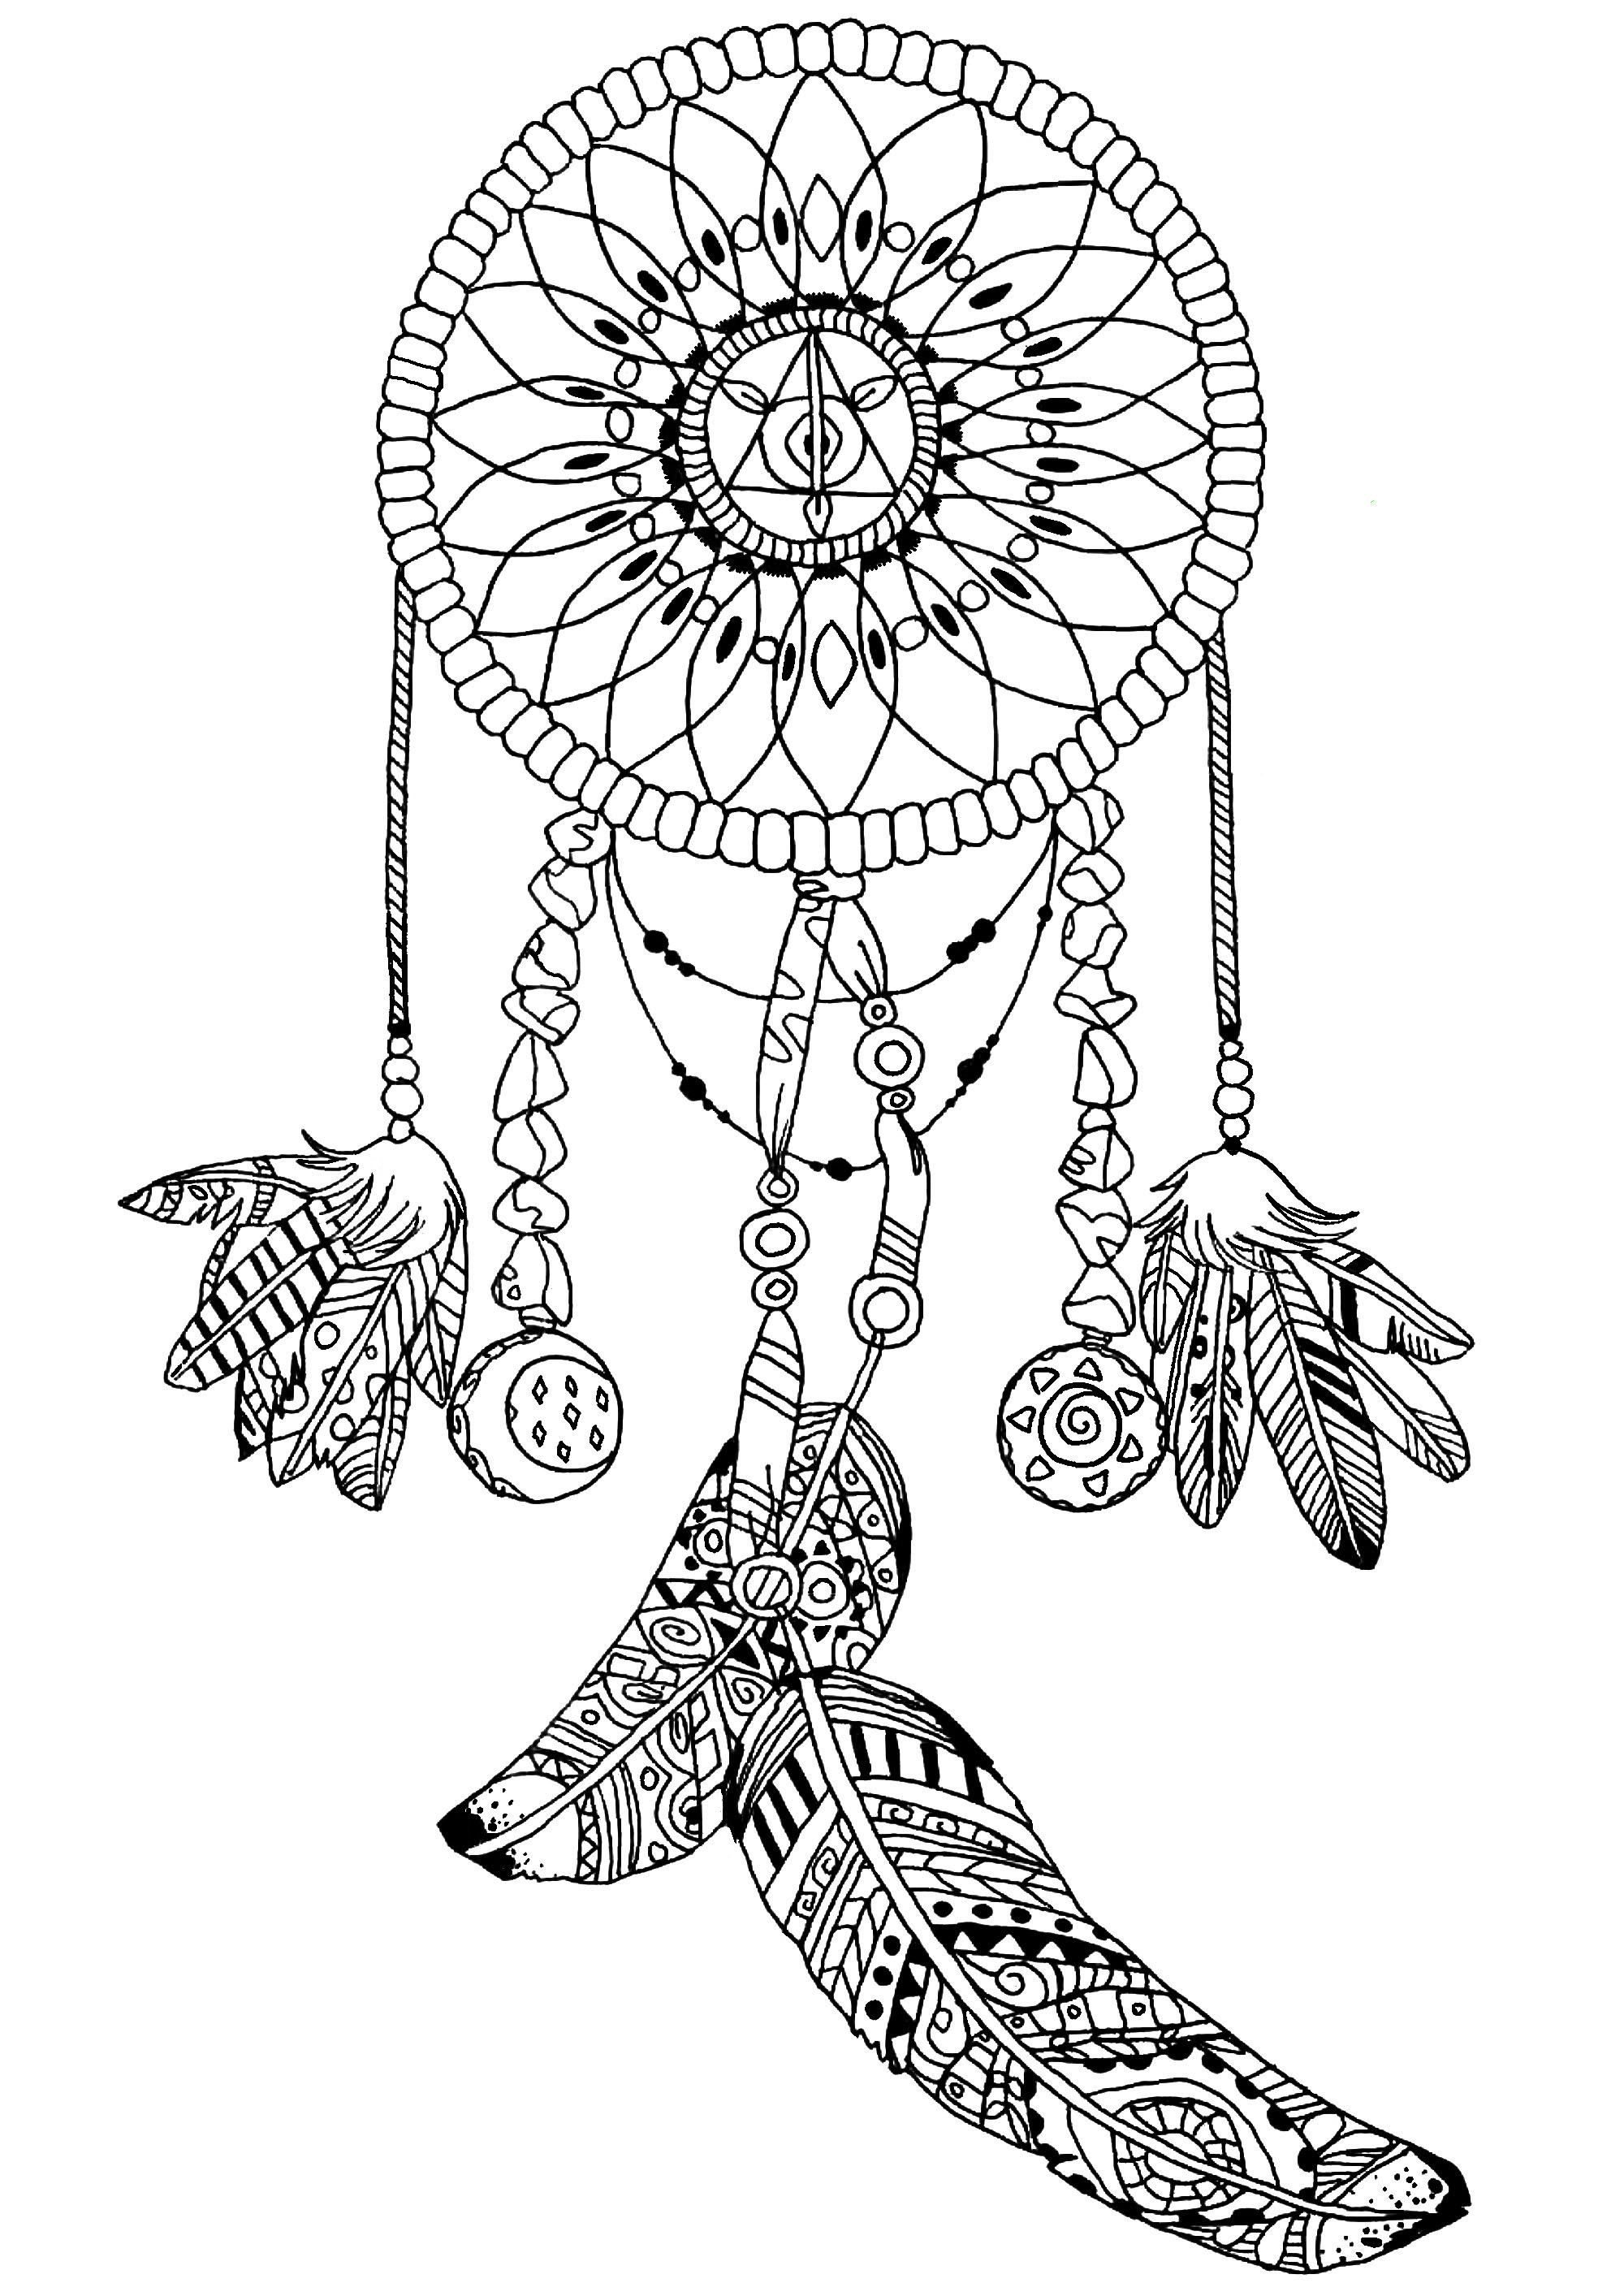 coloring images inspiraled coloring page crayolacom images coloring